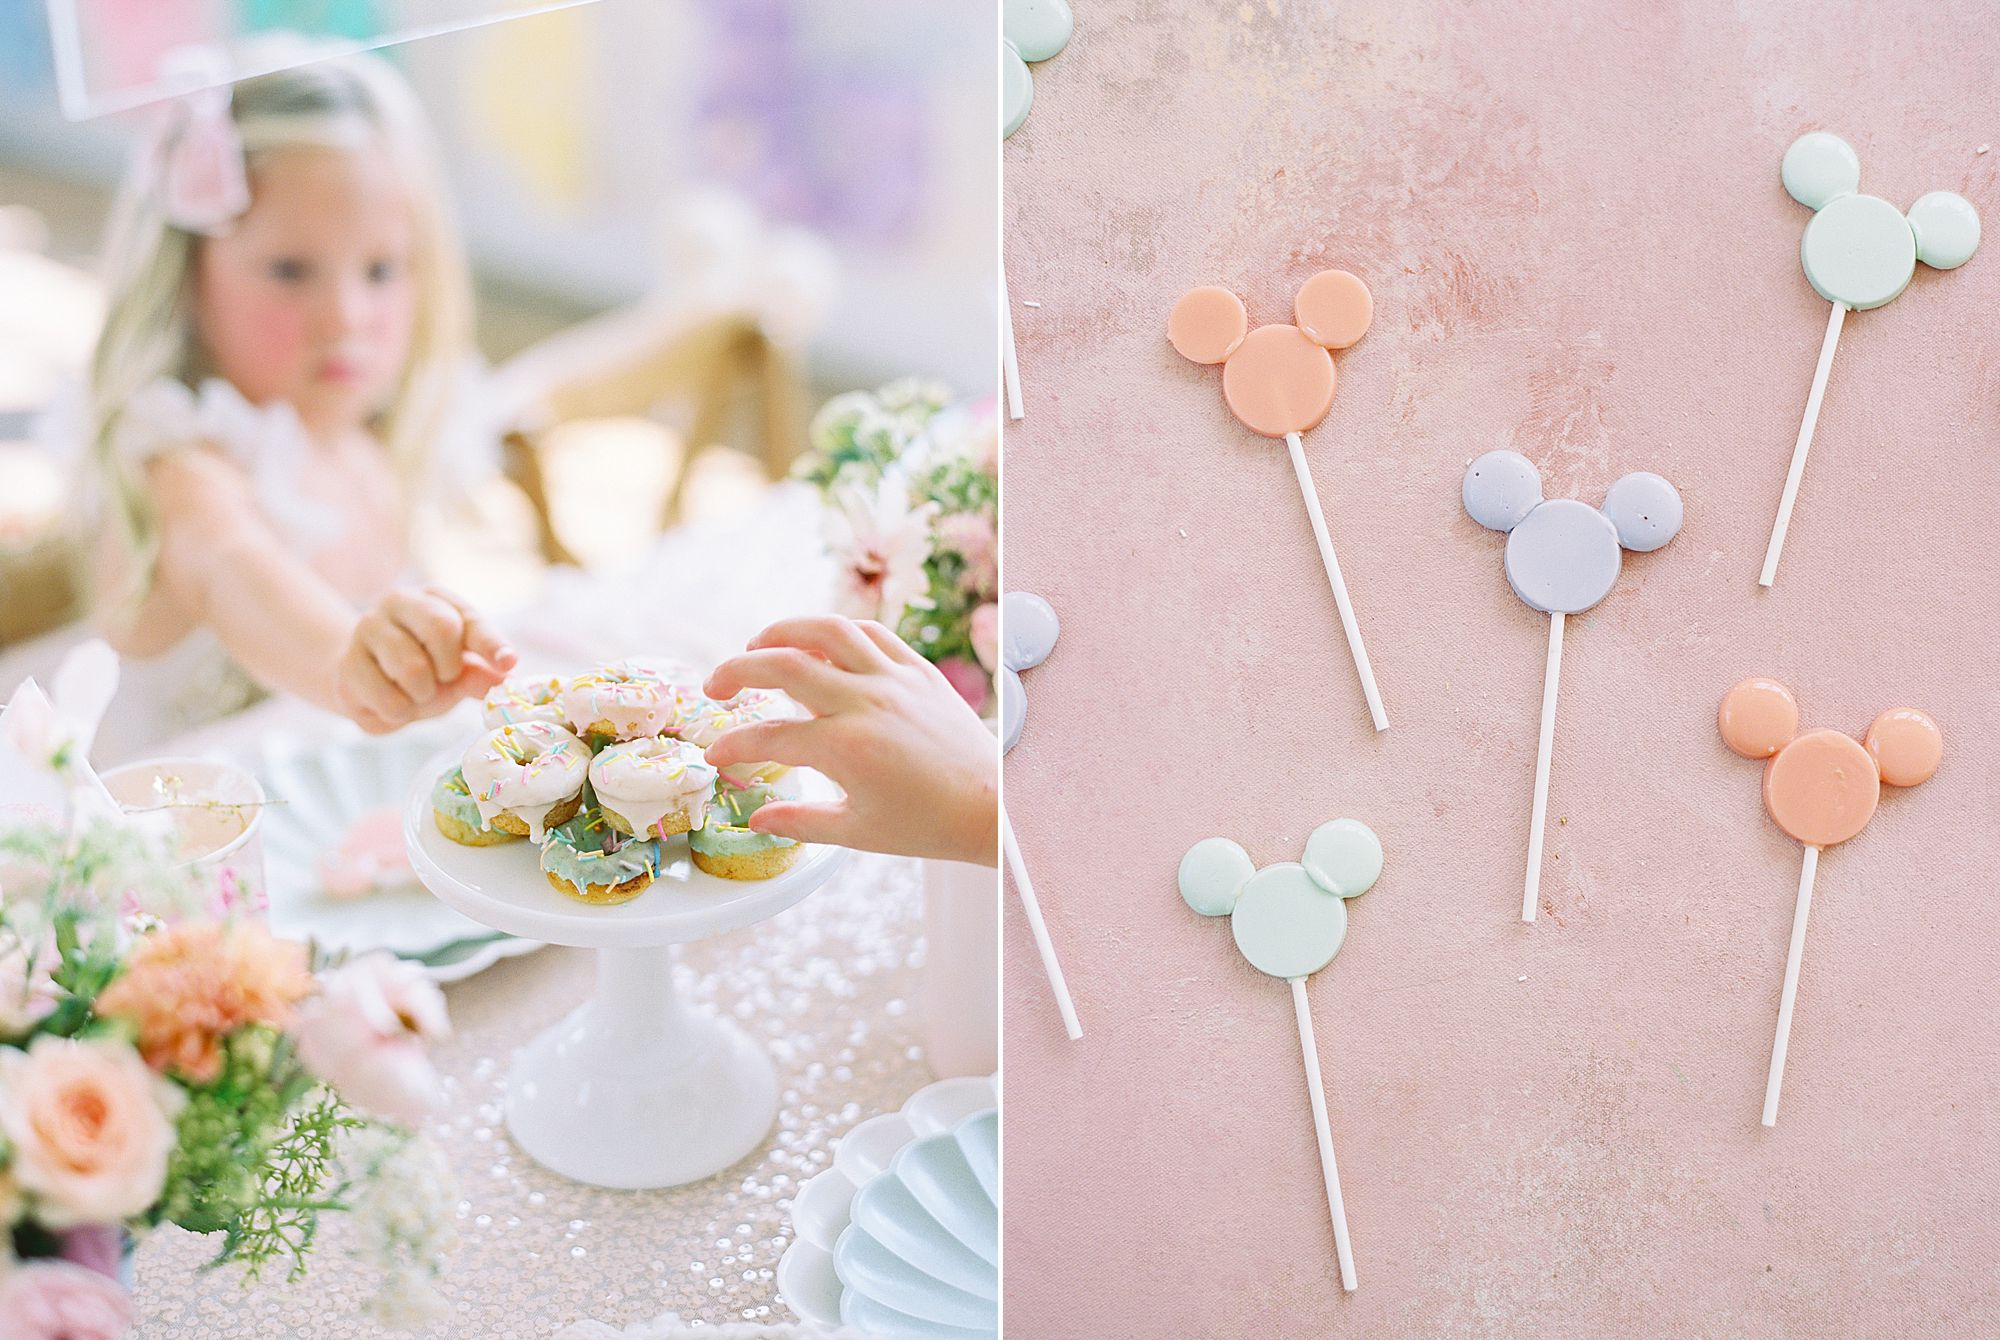 Vintage Disney Birthday Party for Princess Nora's Fourth Birthday - Featured on 100 Layer Cake - Ashley Baumgartner - Parker Grace Events_0038.jpg